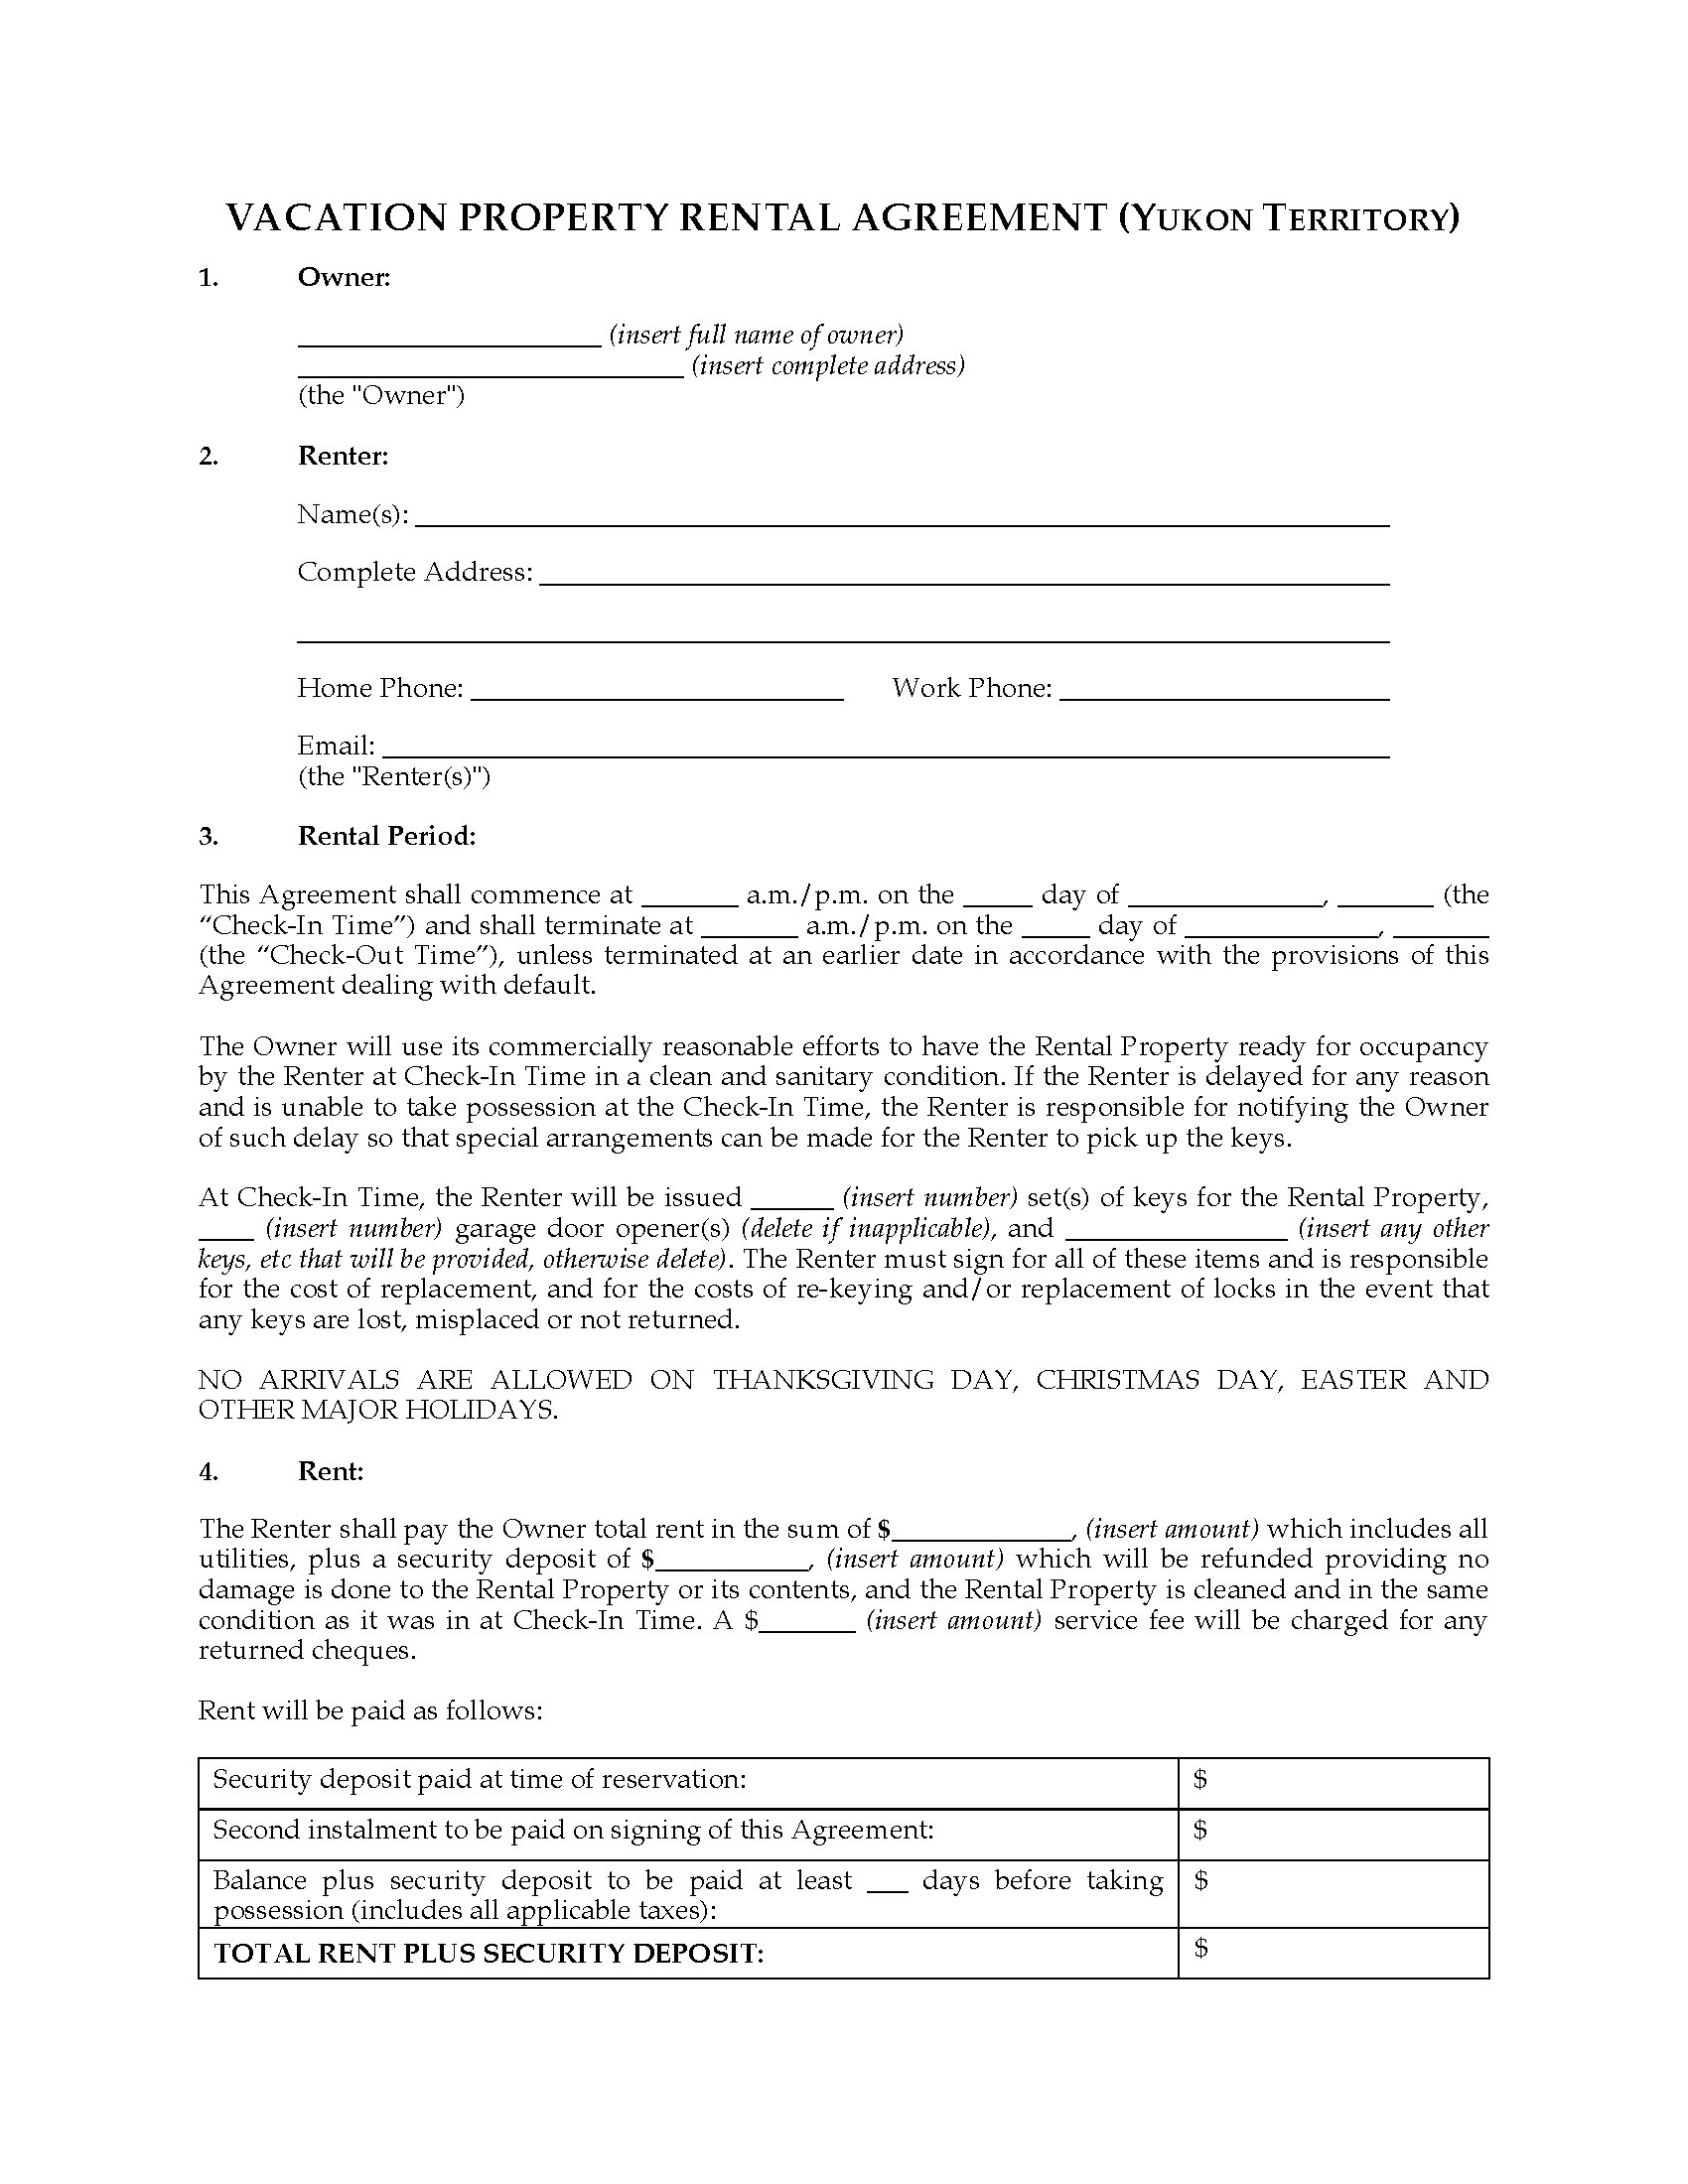 Picture Of Yukon Vacation Property Rental Agreement